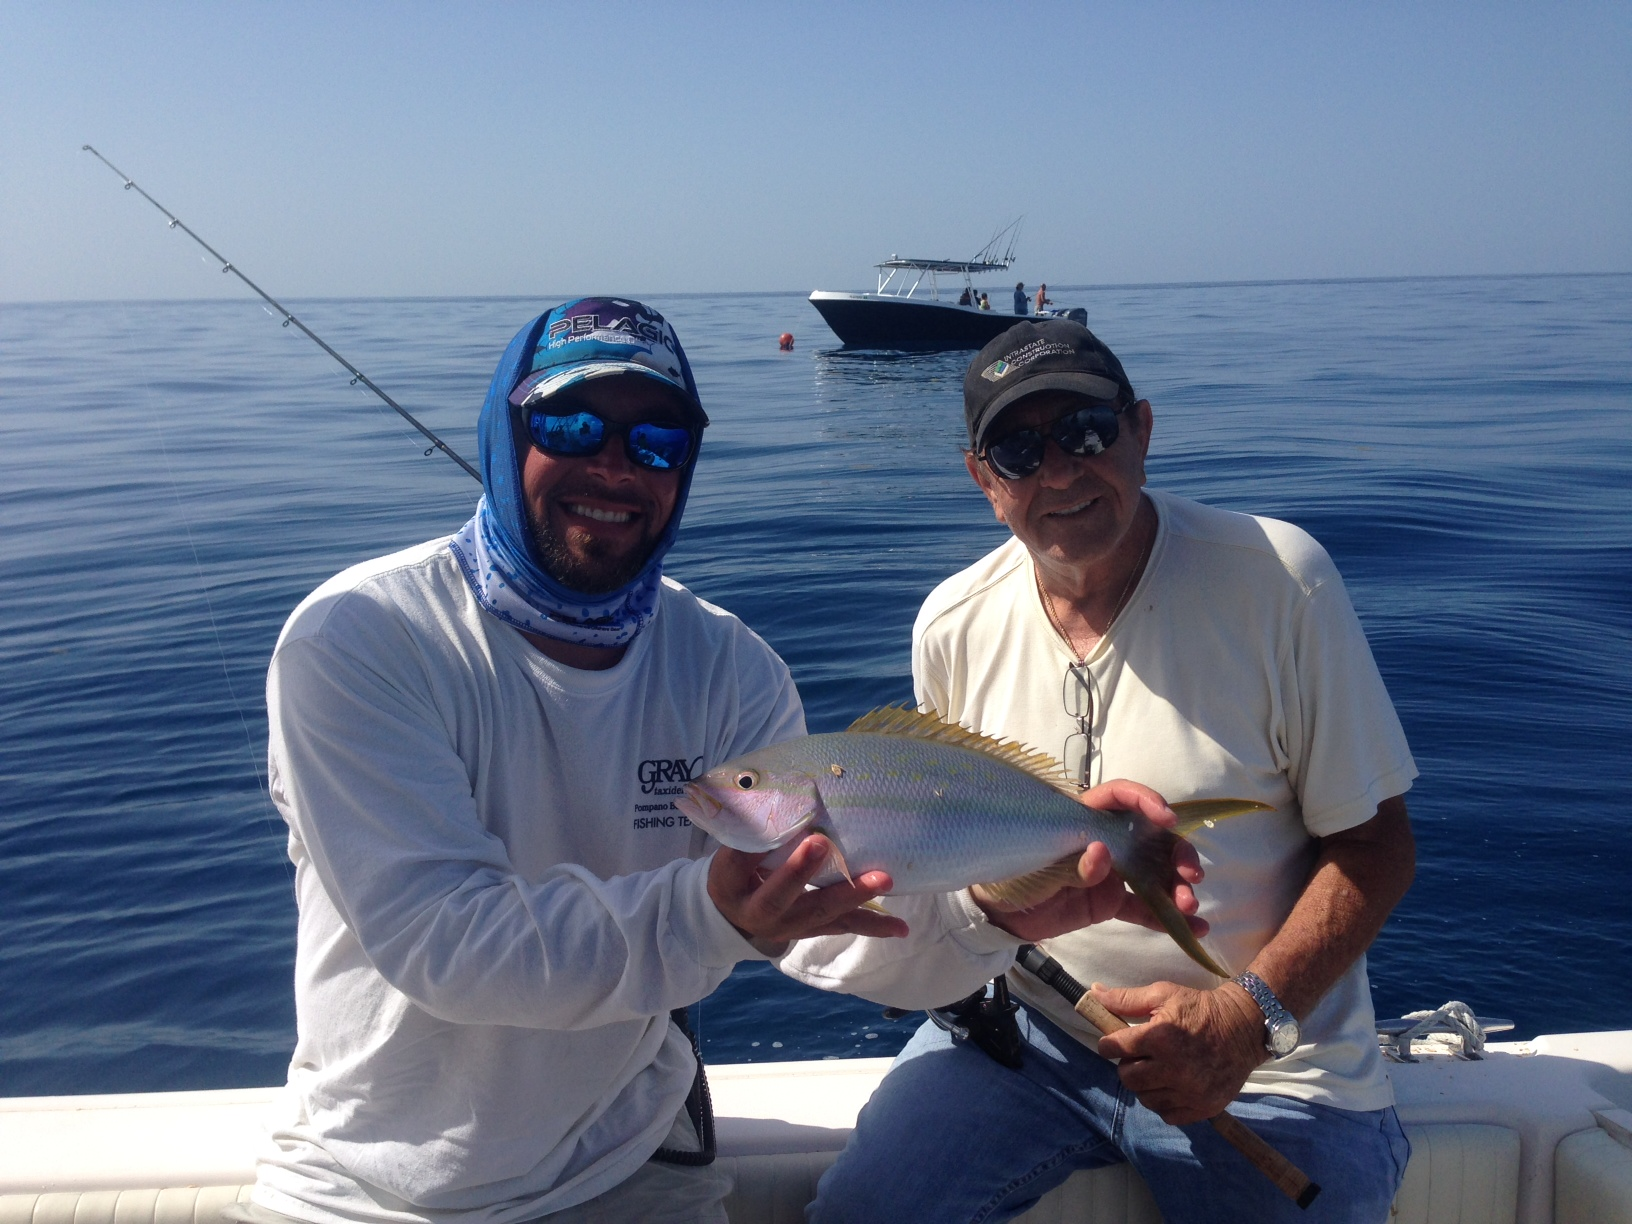 Yellowtail snapper fishing off Marathon. Our reef charters have been hot lately with plenty of fish making there way to the filet table.